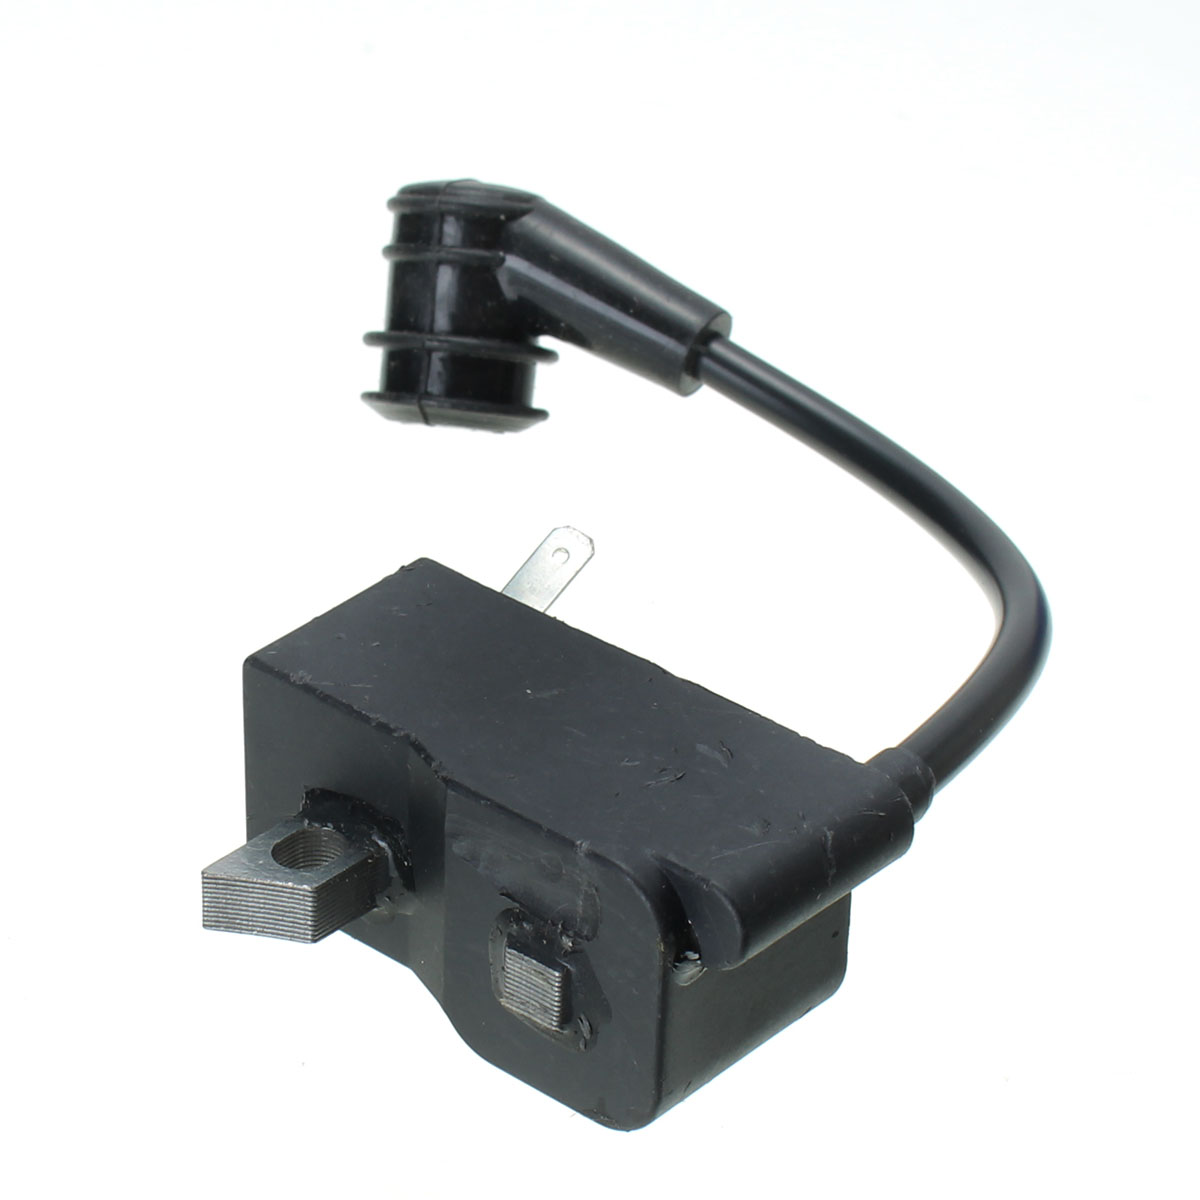 AM Ignition Module Coil Assembly Fit Stihl MS171 MS181 MS211 Chainsaw 1139 400 1307